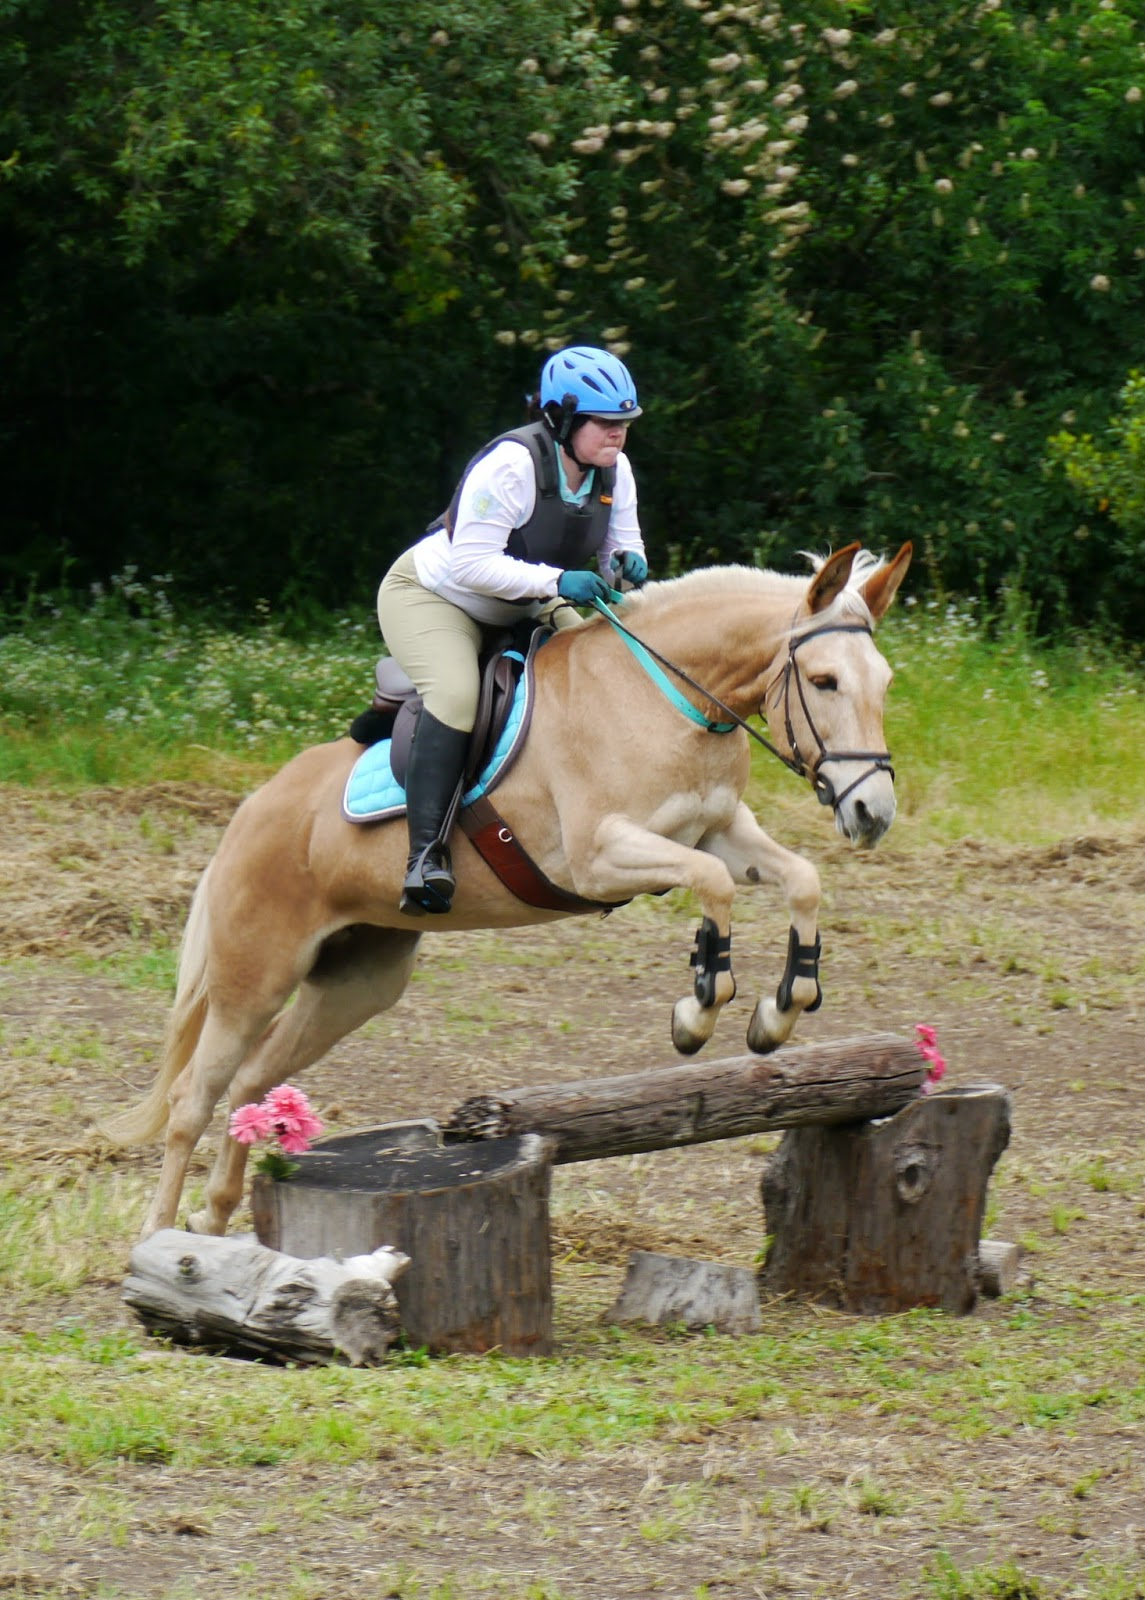 Horses jumping cross country - photo#45